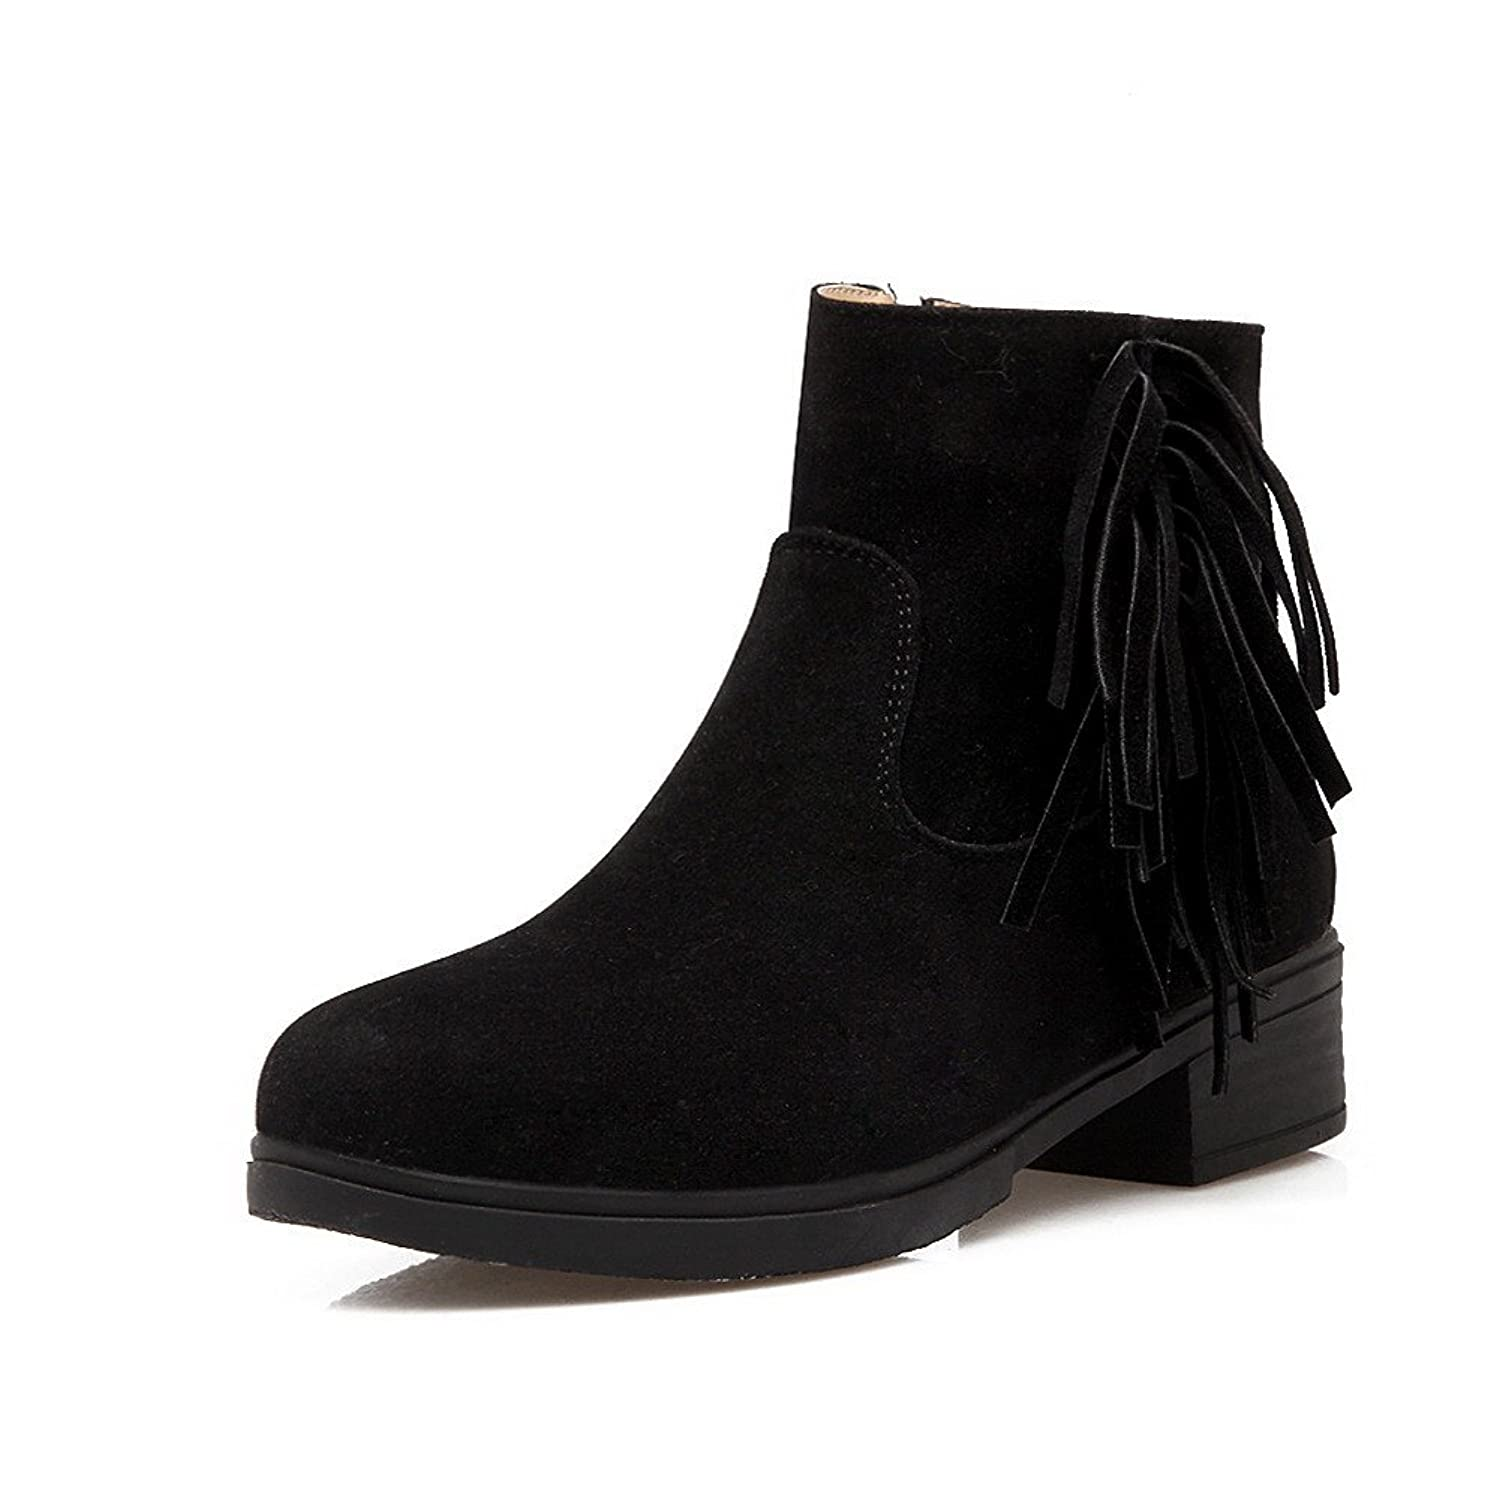 WeiPoot Women's Frosted Closed Round Toe Solid Low-top Low-Heels Boots